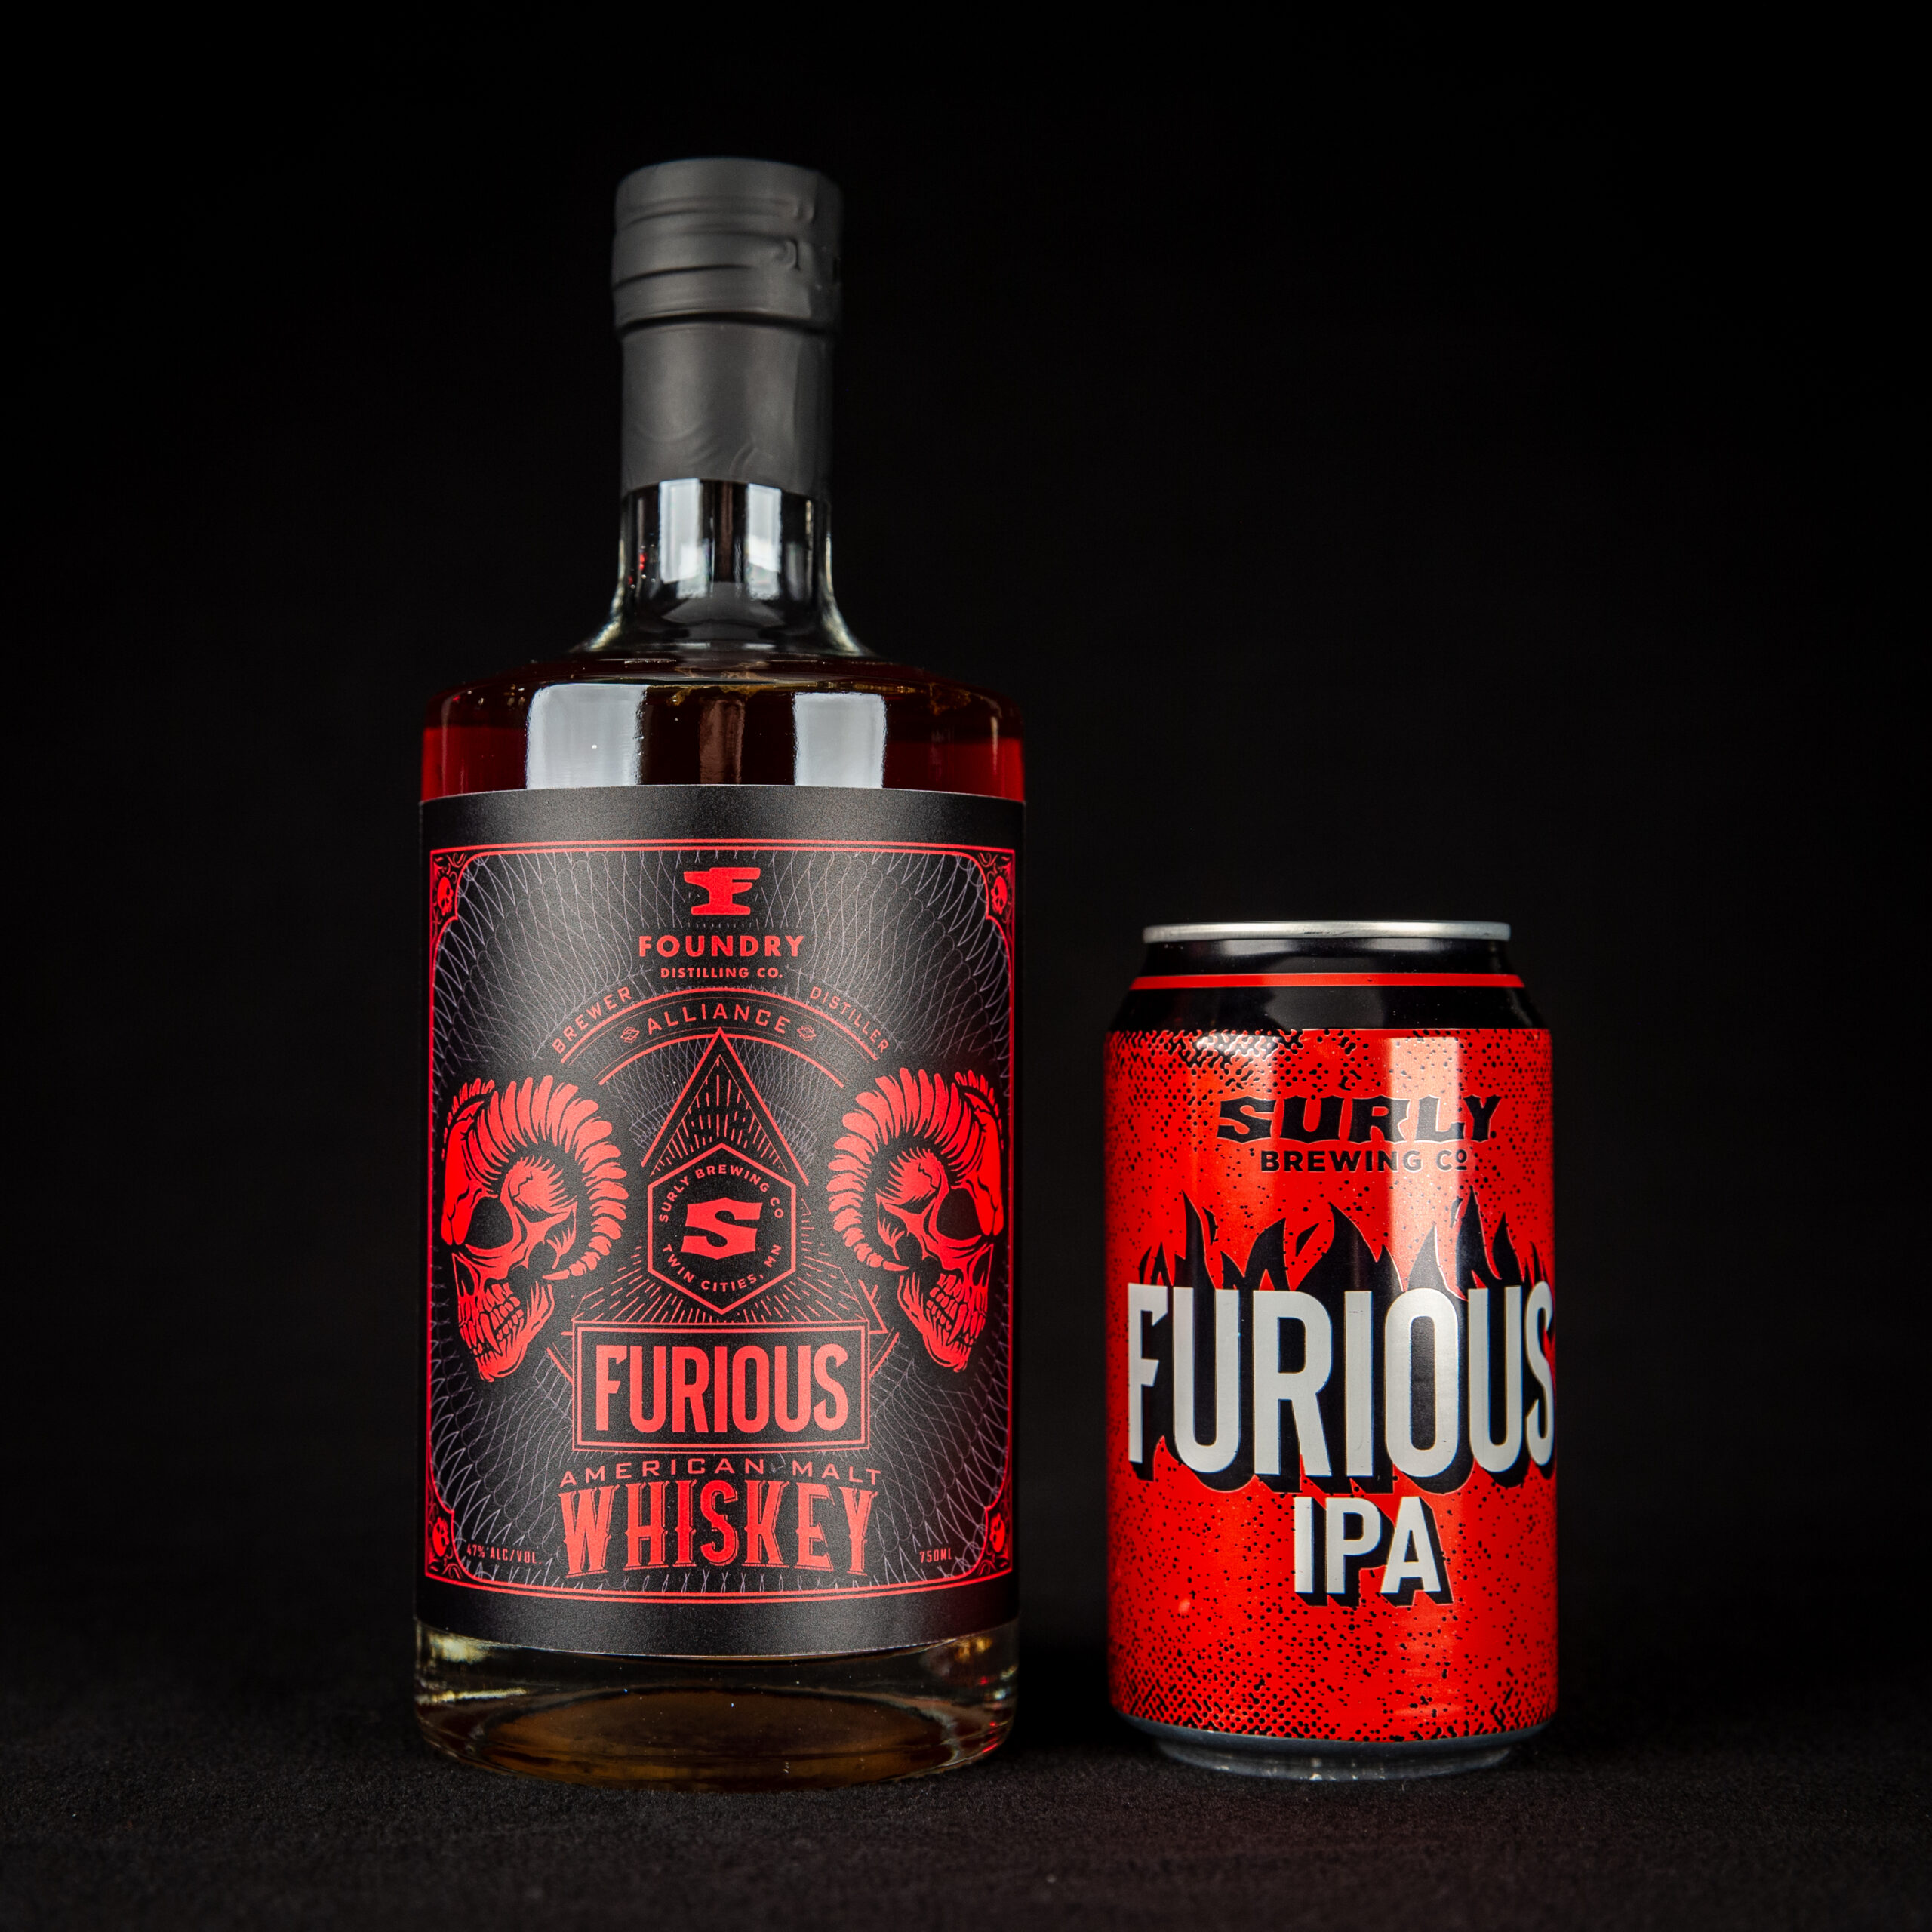 Foundry Distilling Furious Whiskey